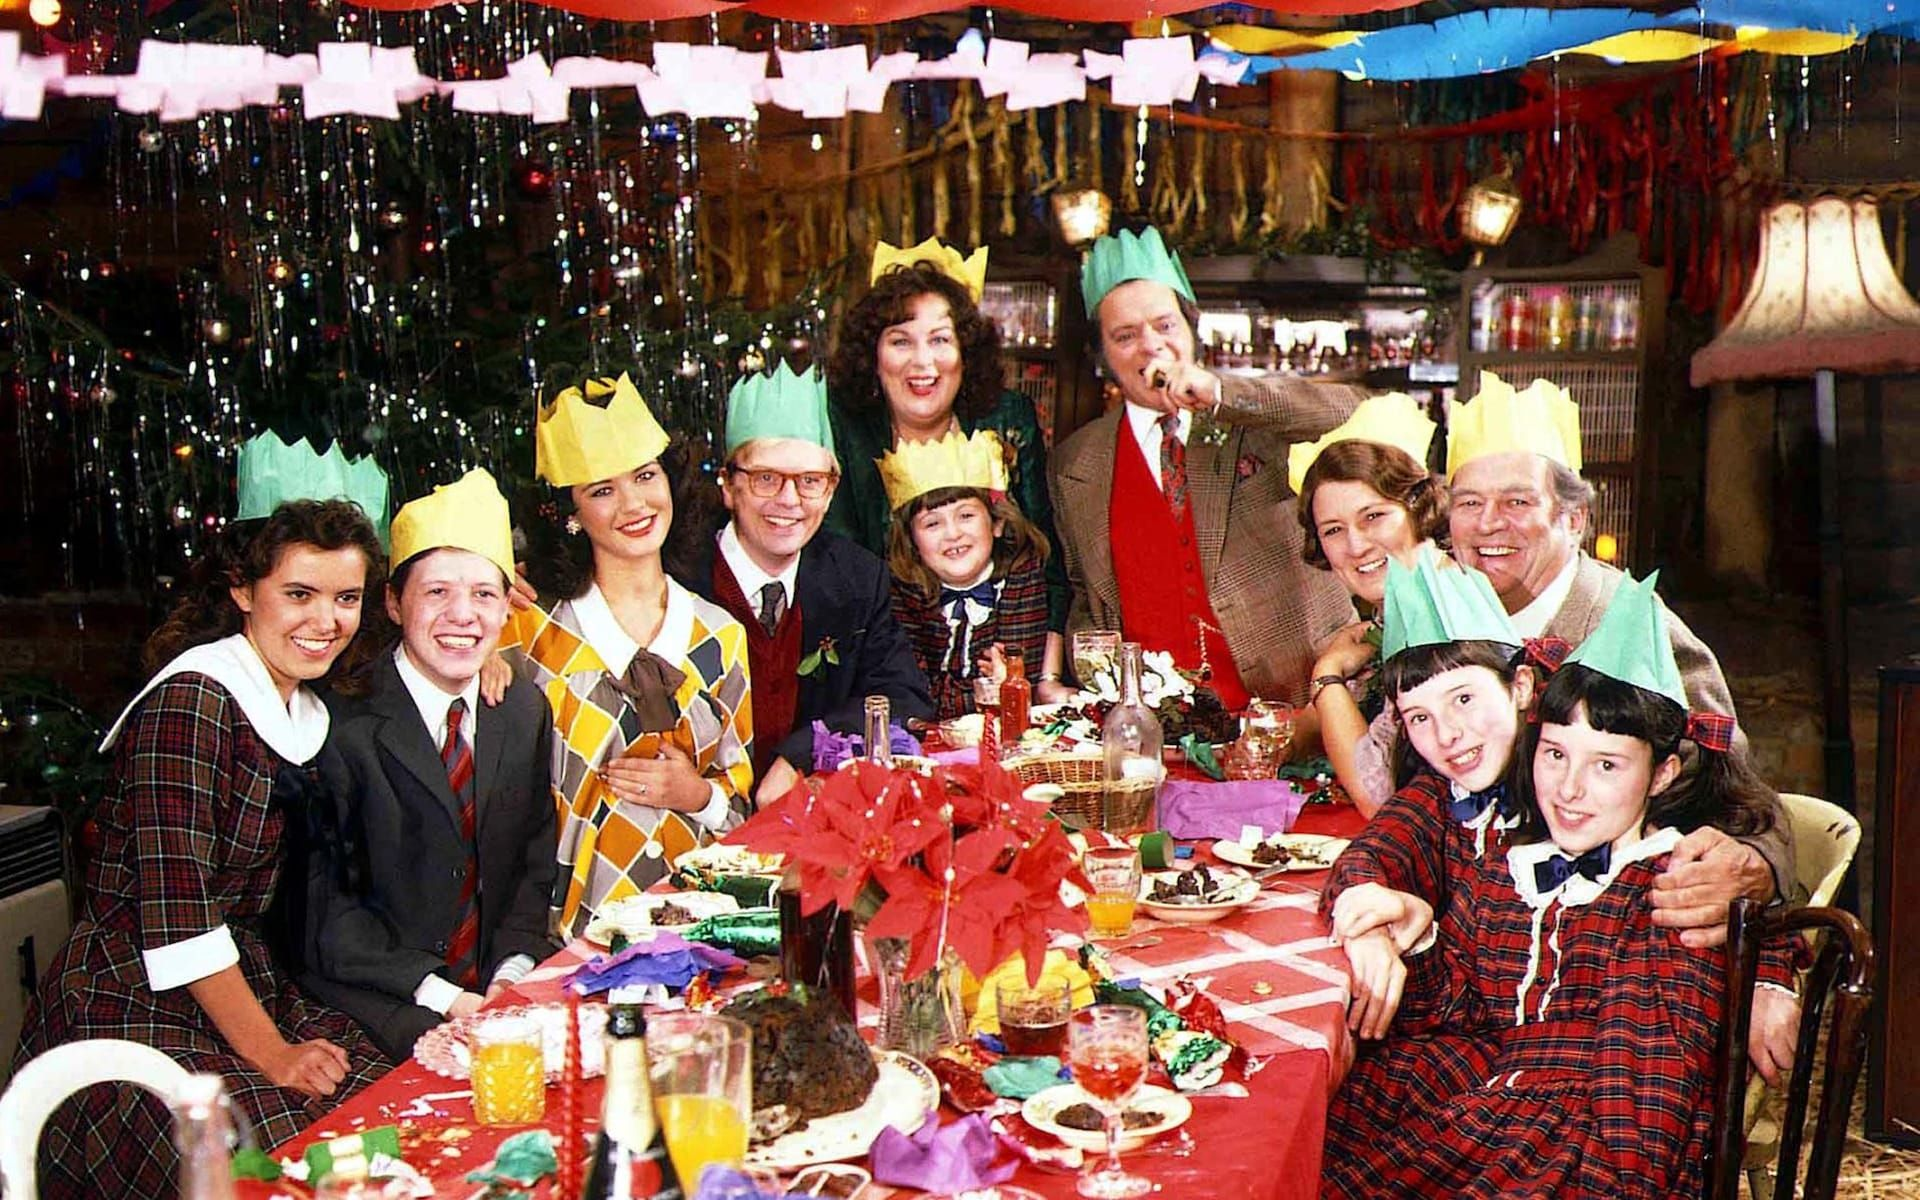 Christmas dinner through the ages Darling buds of may